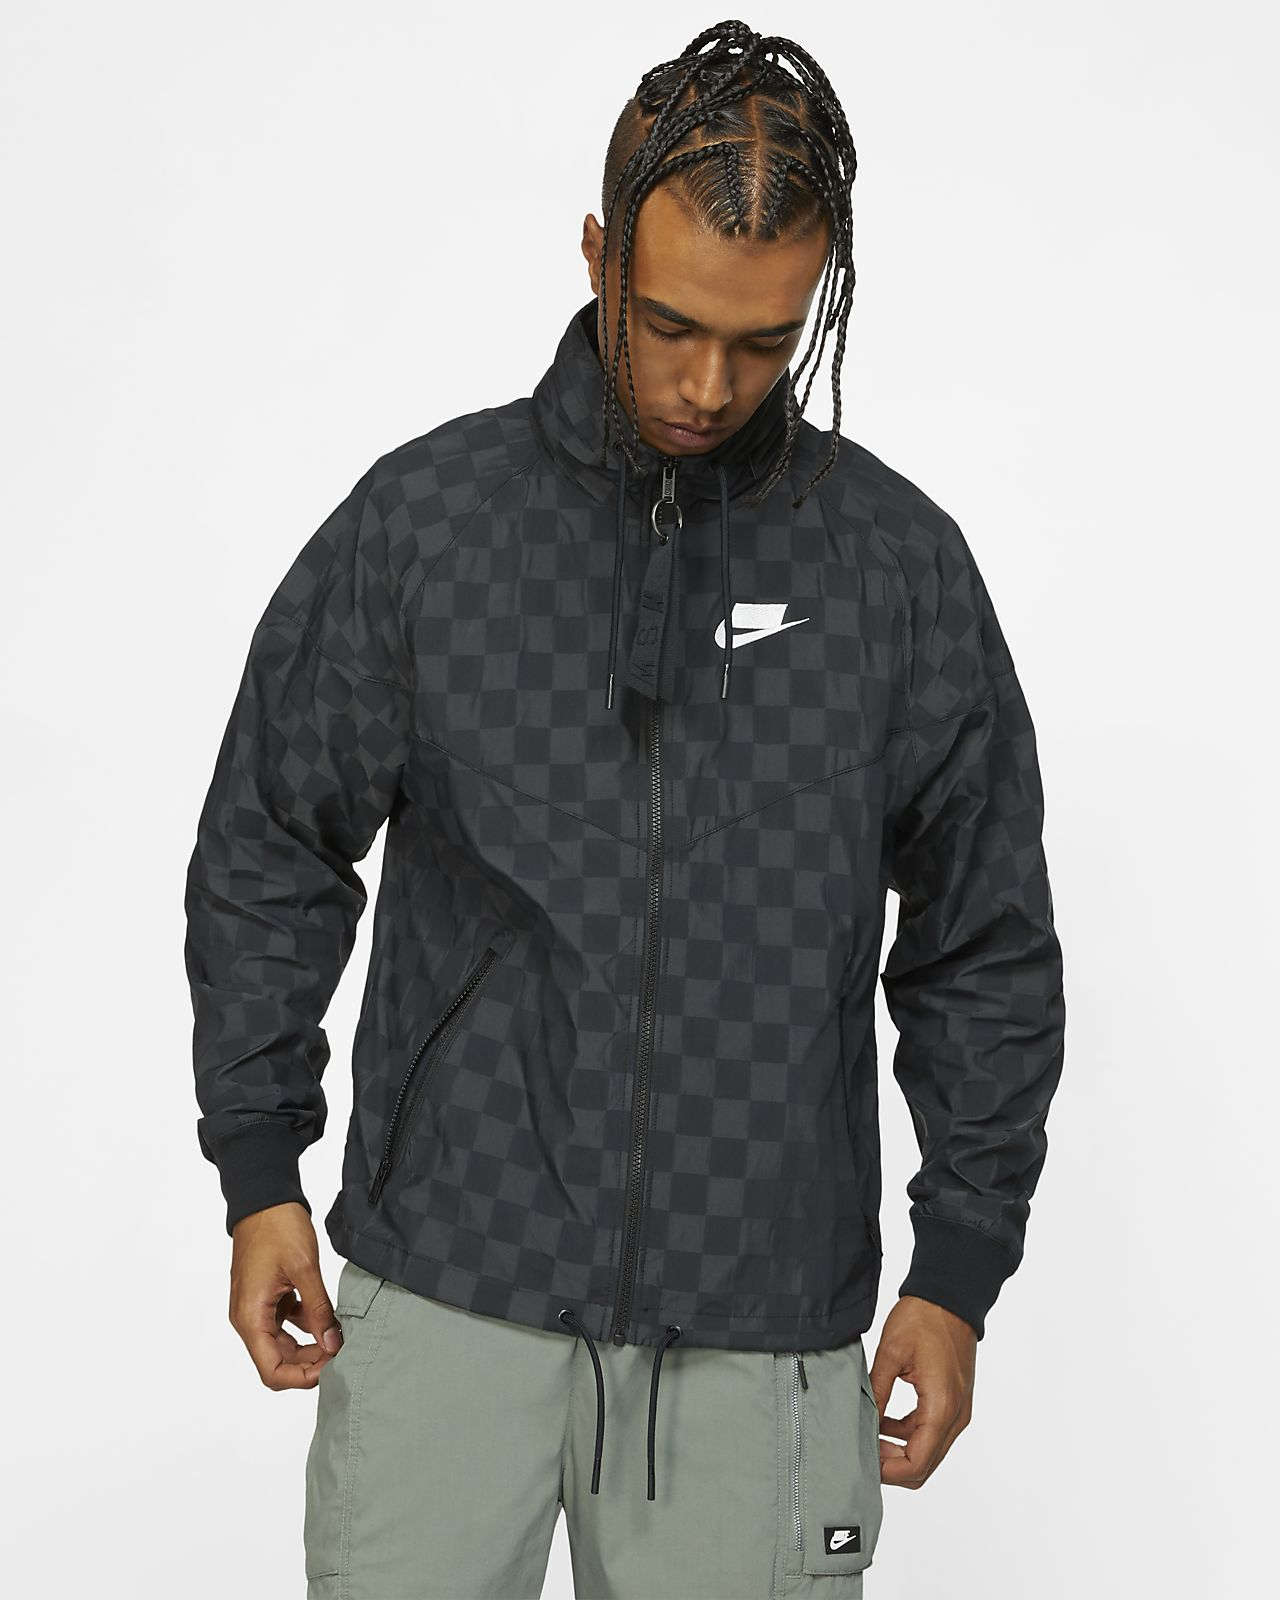 Nike Sportswear Windrunner NSW Men's Jacket